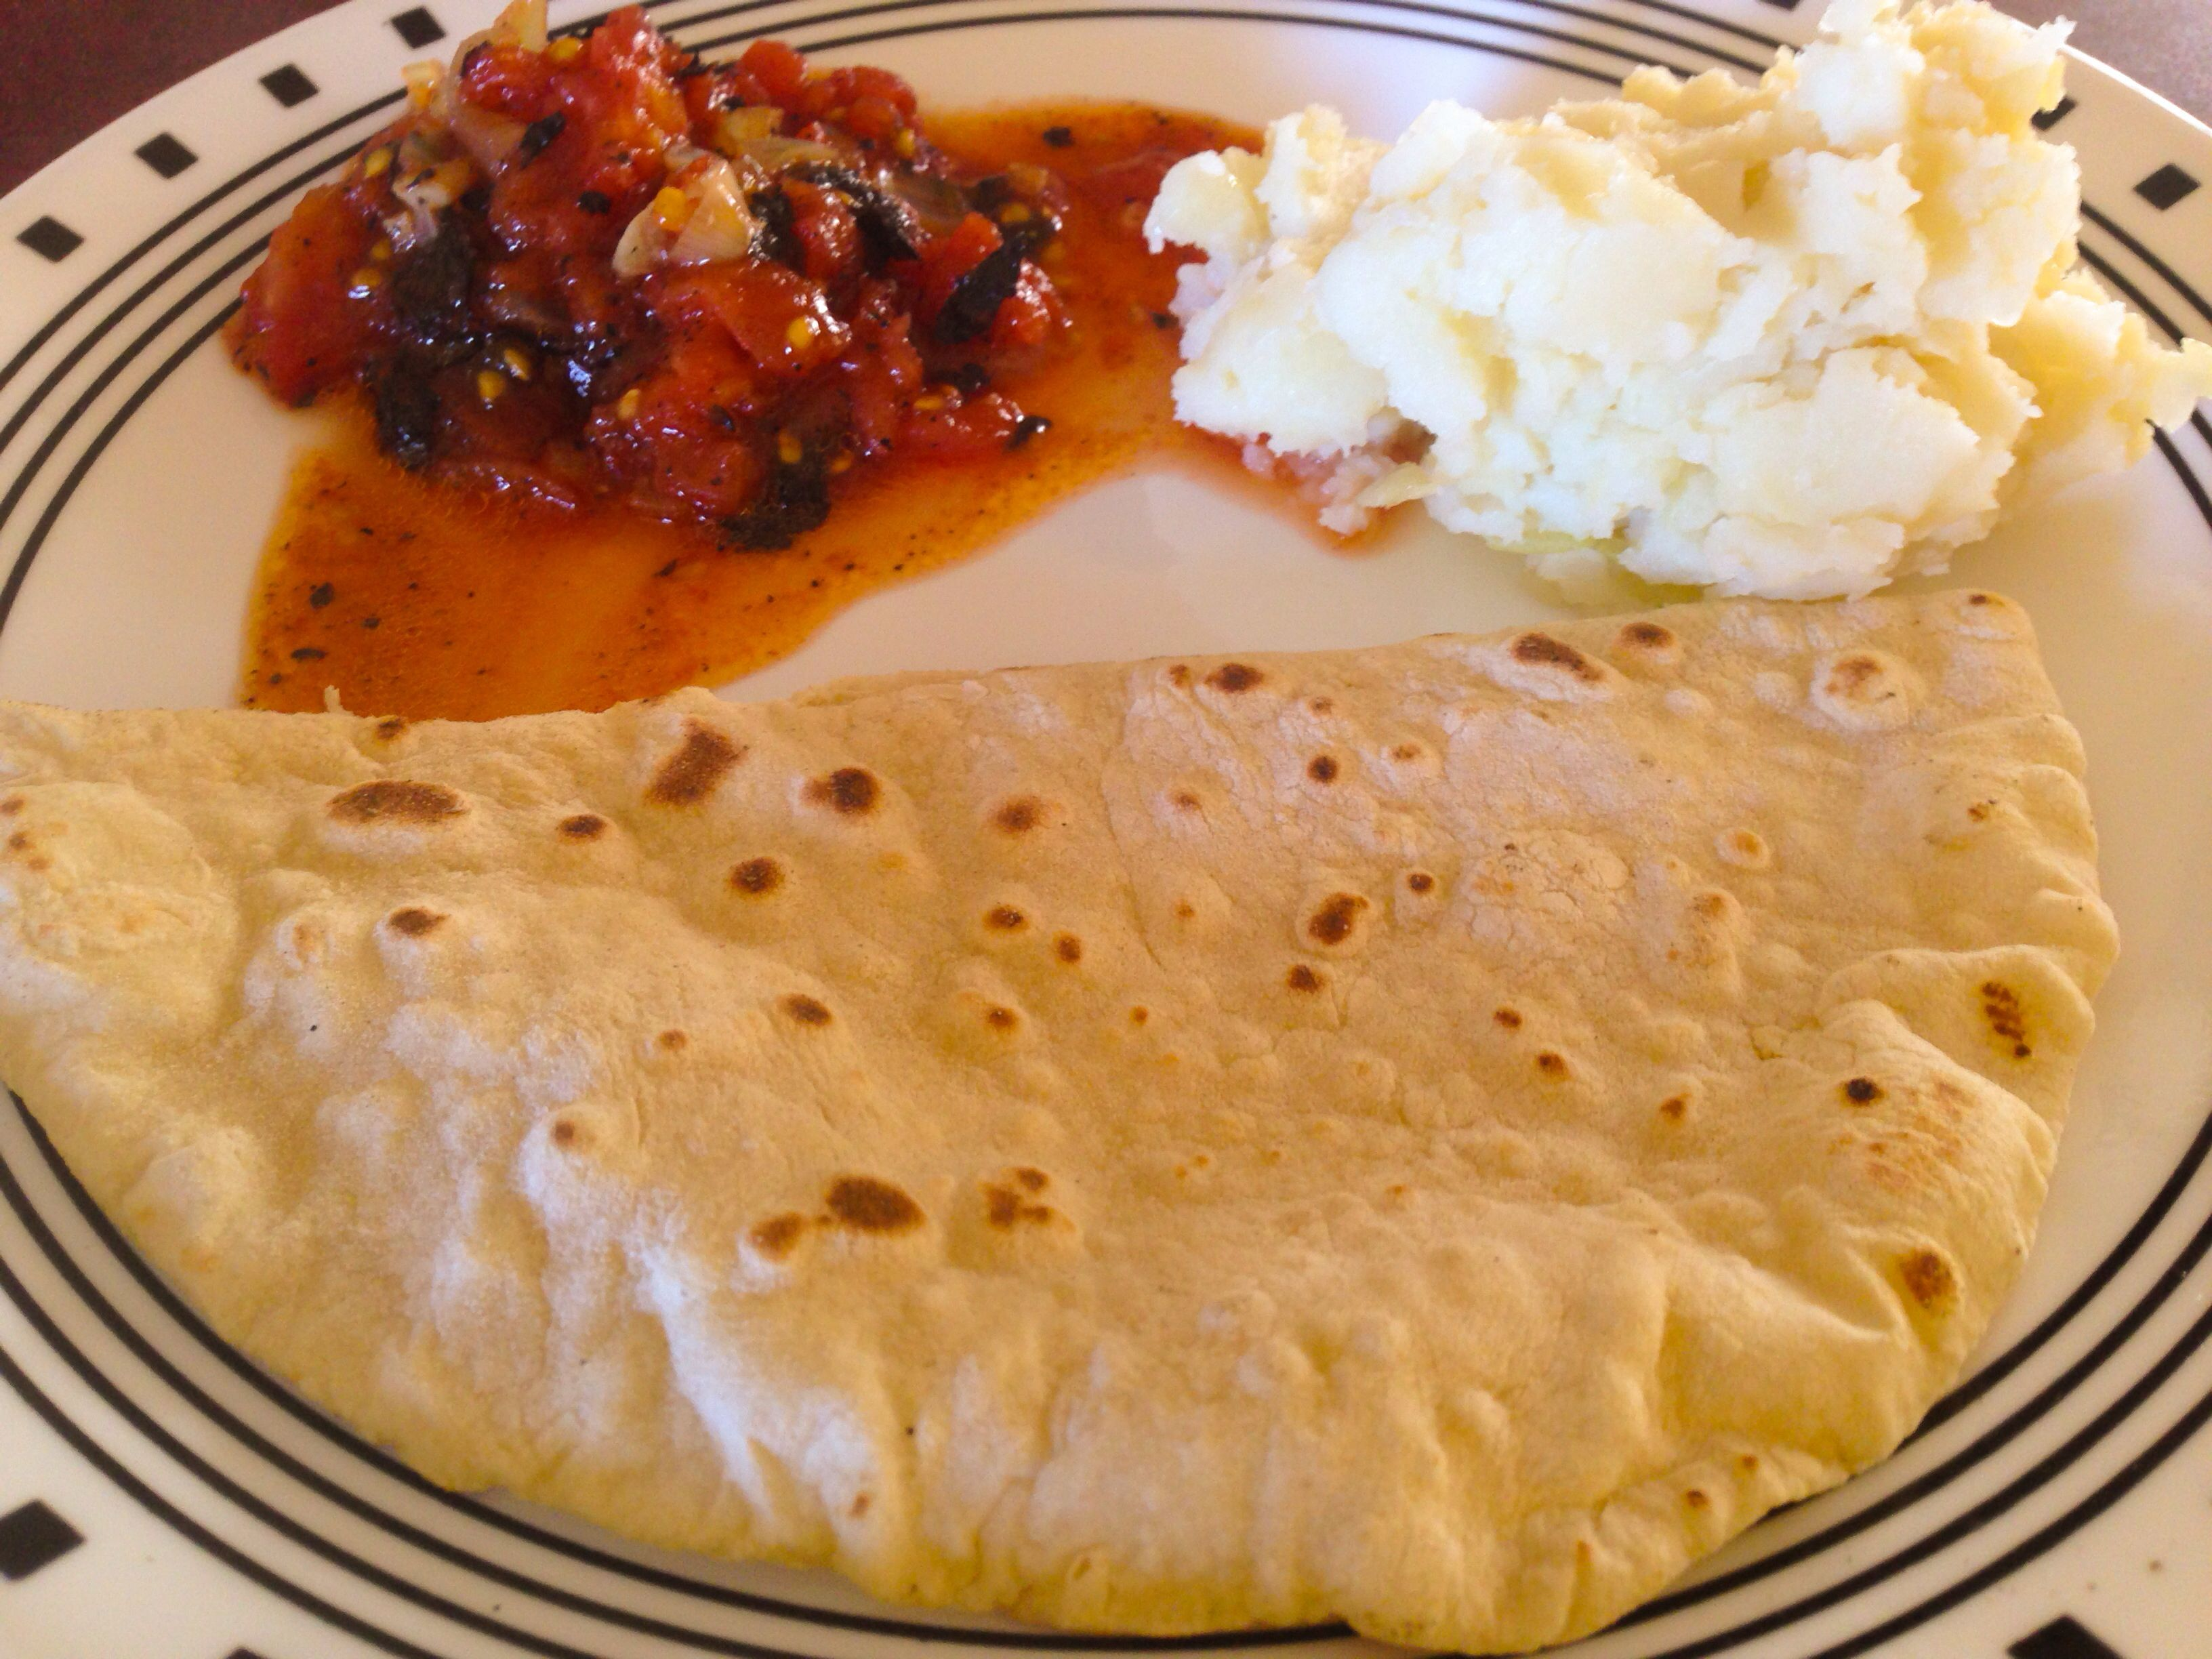 Mom made local breakfast food for me one day! It's Sada roti